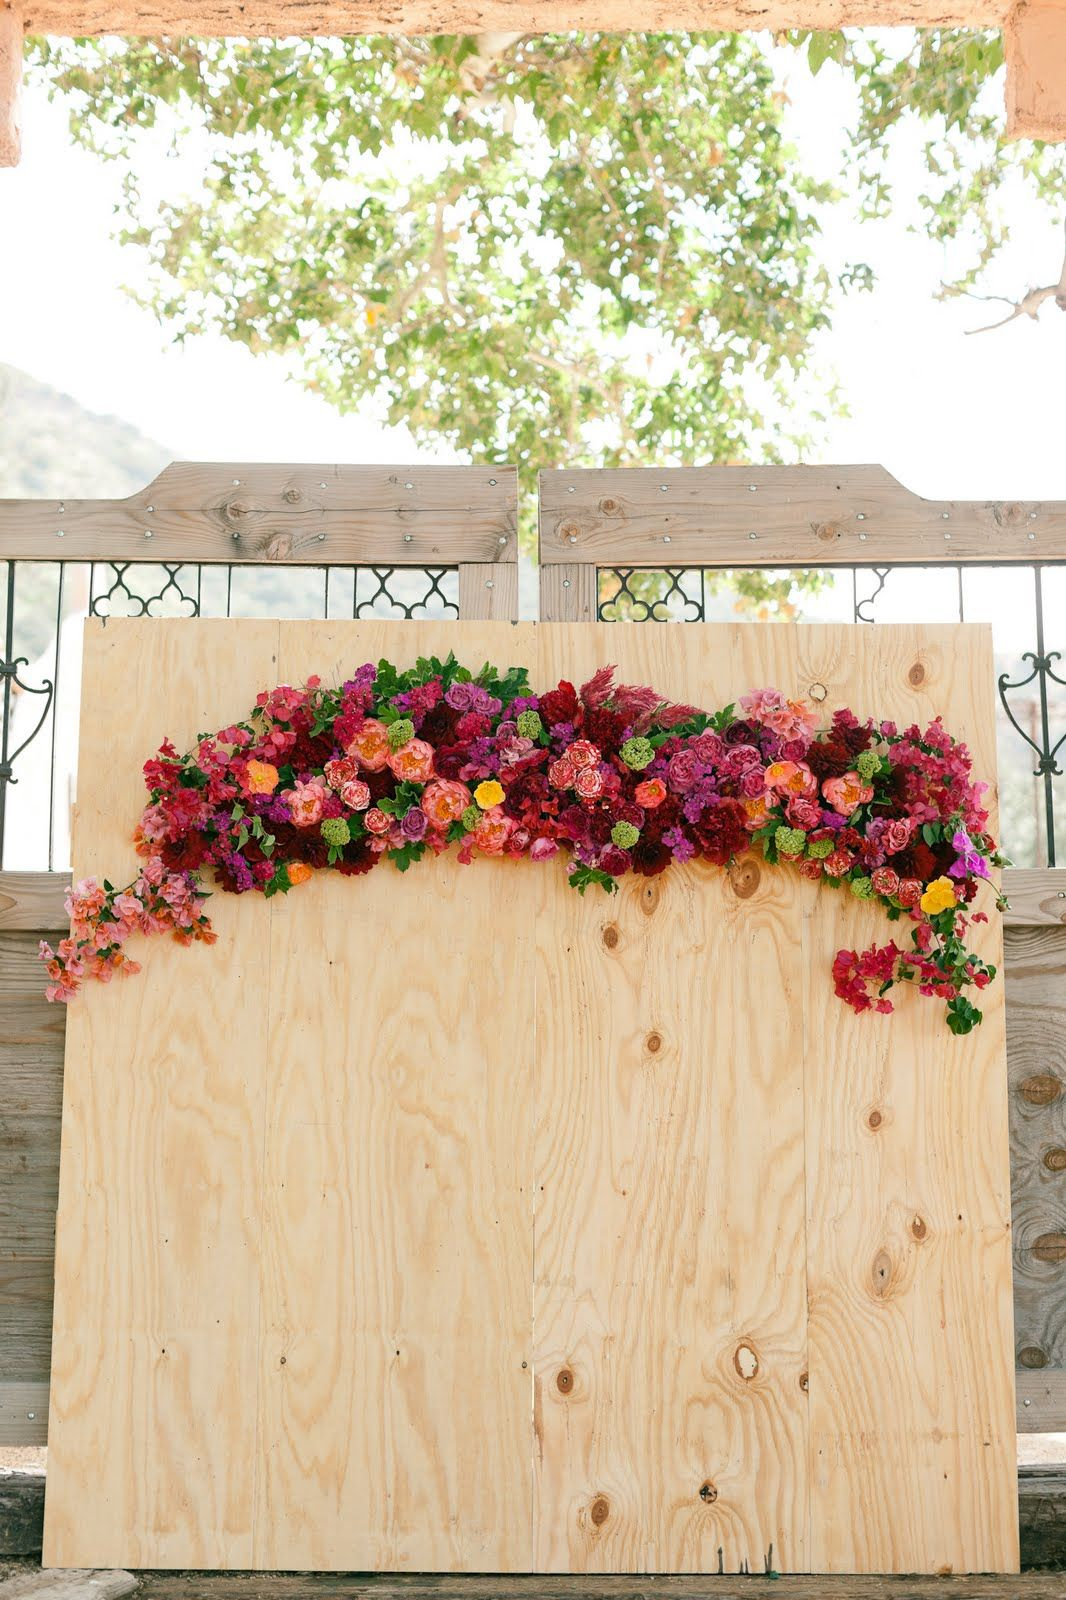 Floral Swag on Wood Backdrop | Ceremony Flowers | Pinterest ...